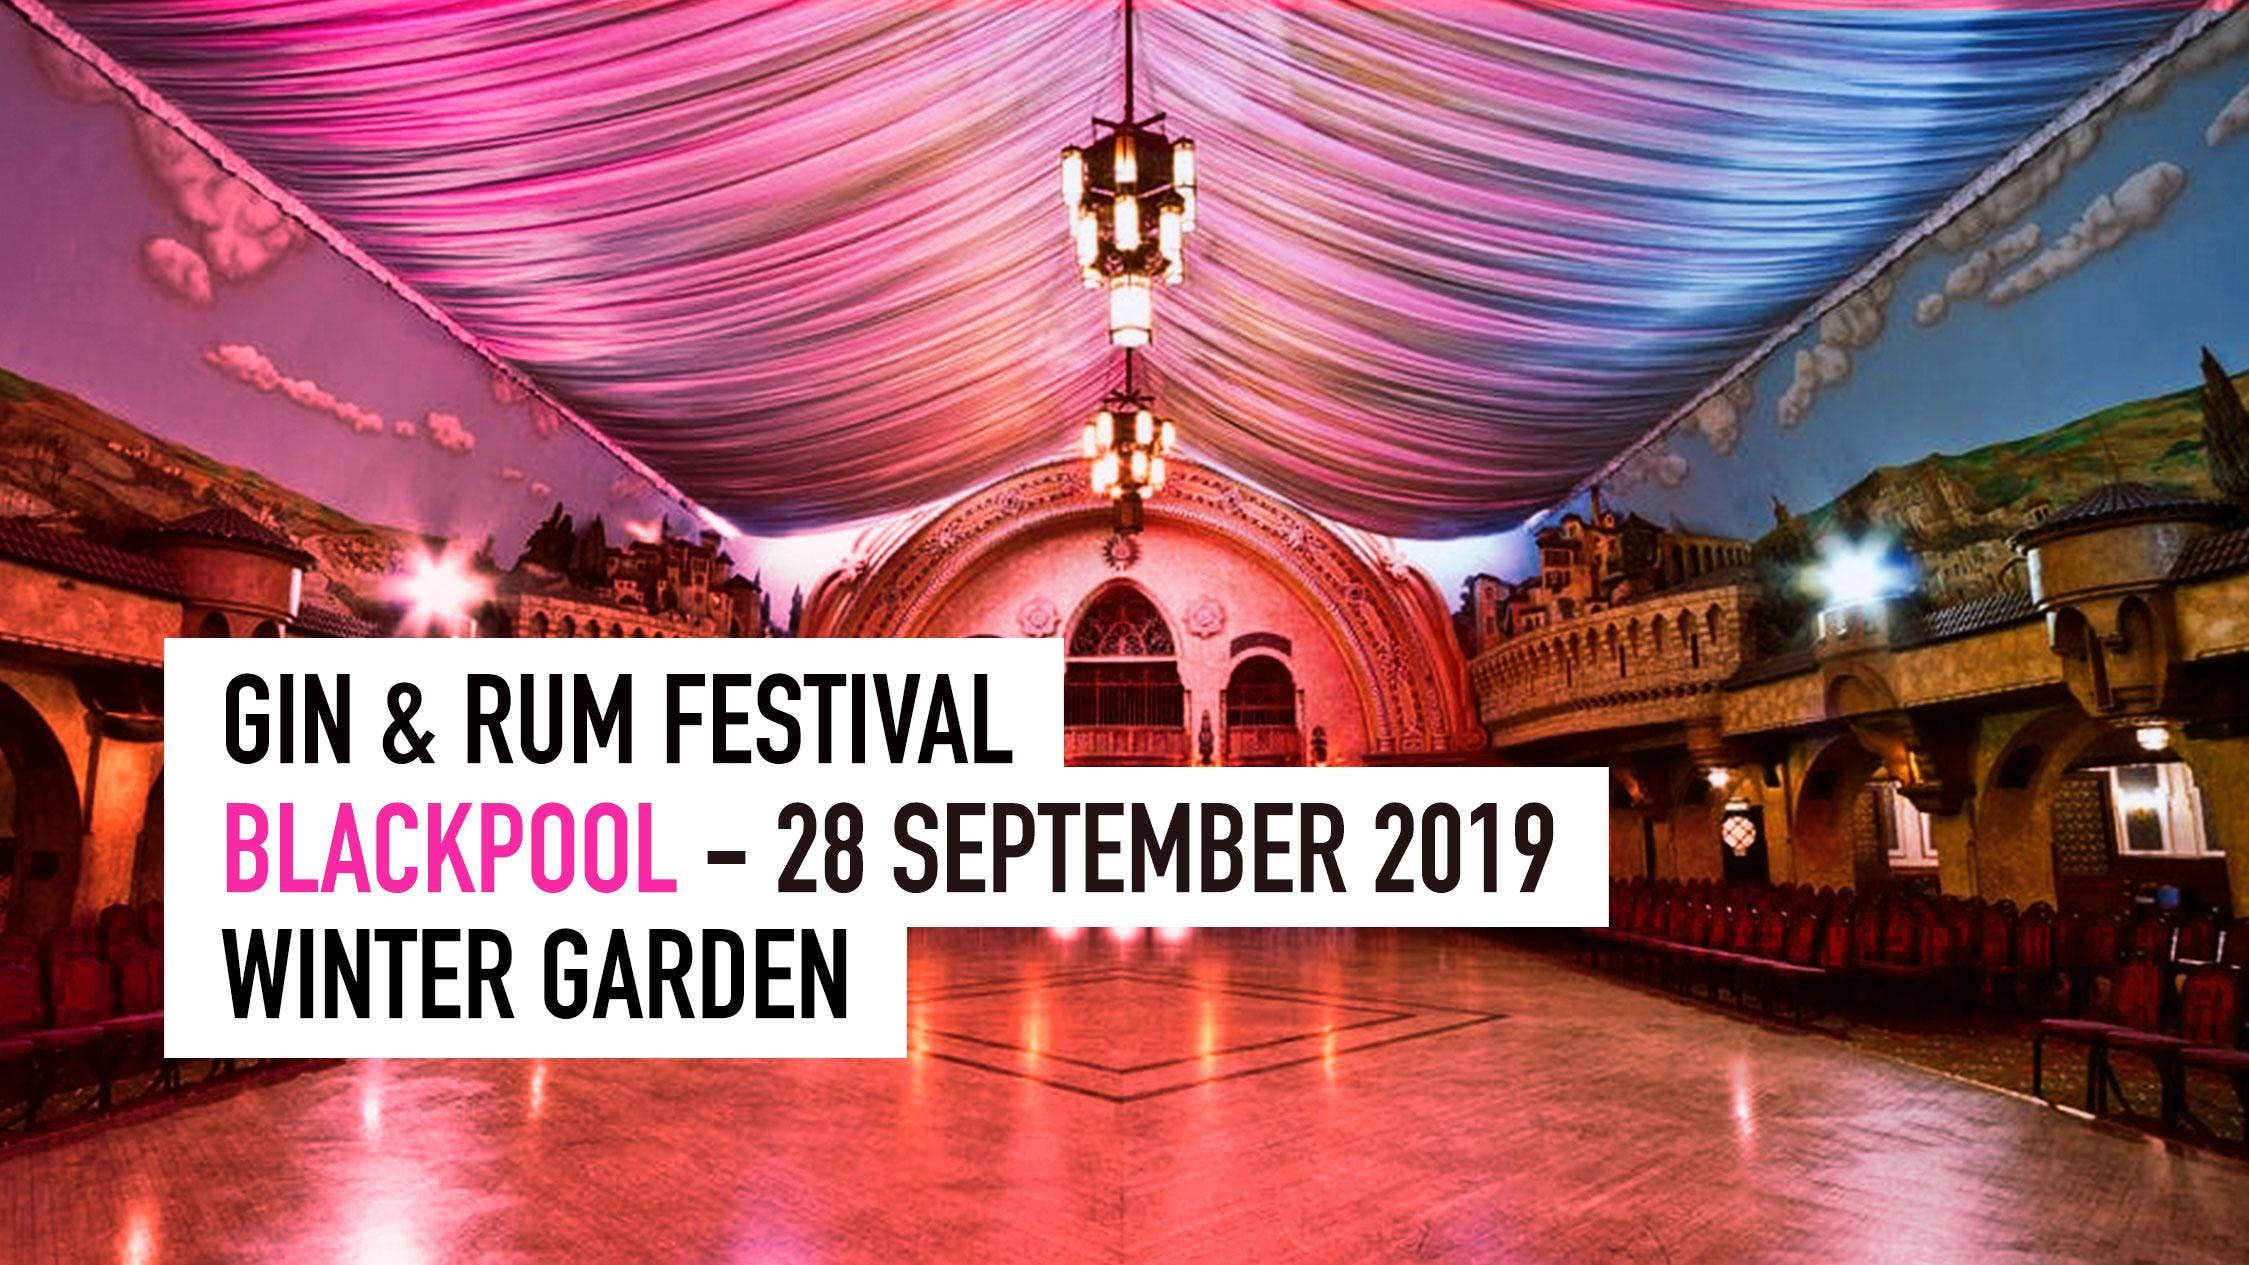 The Gin & Rum Festival - Blackpool - 2019